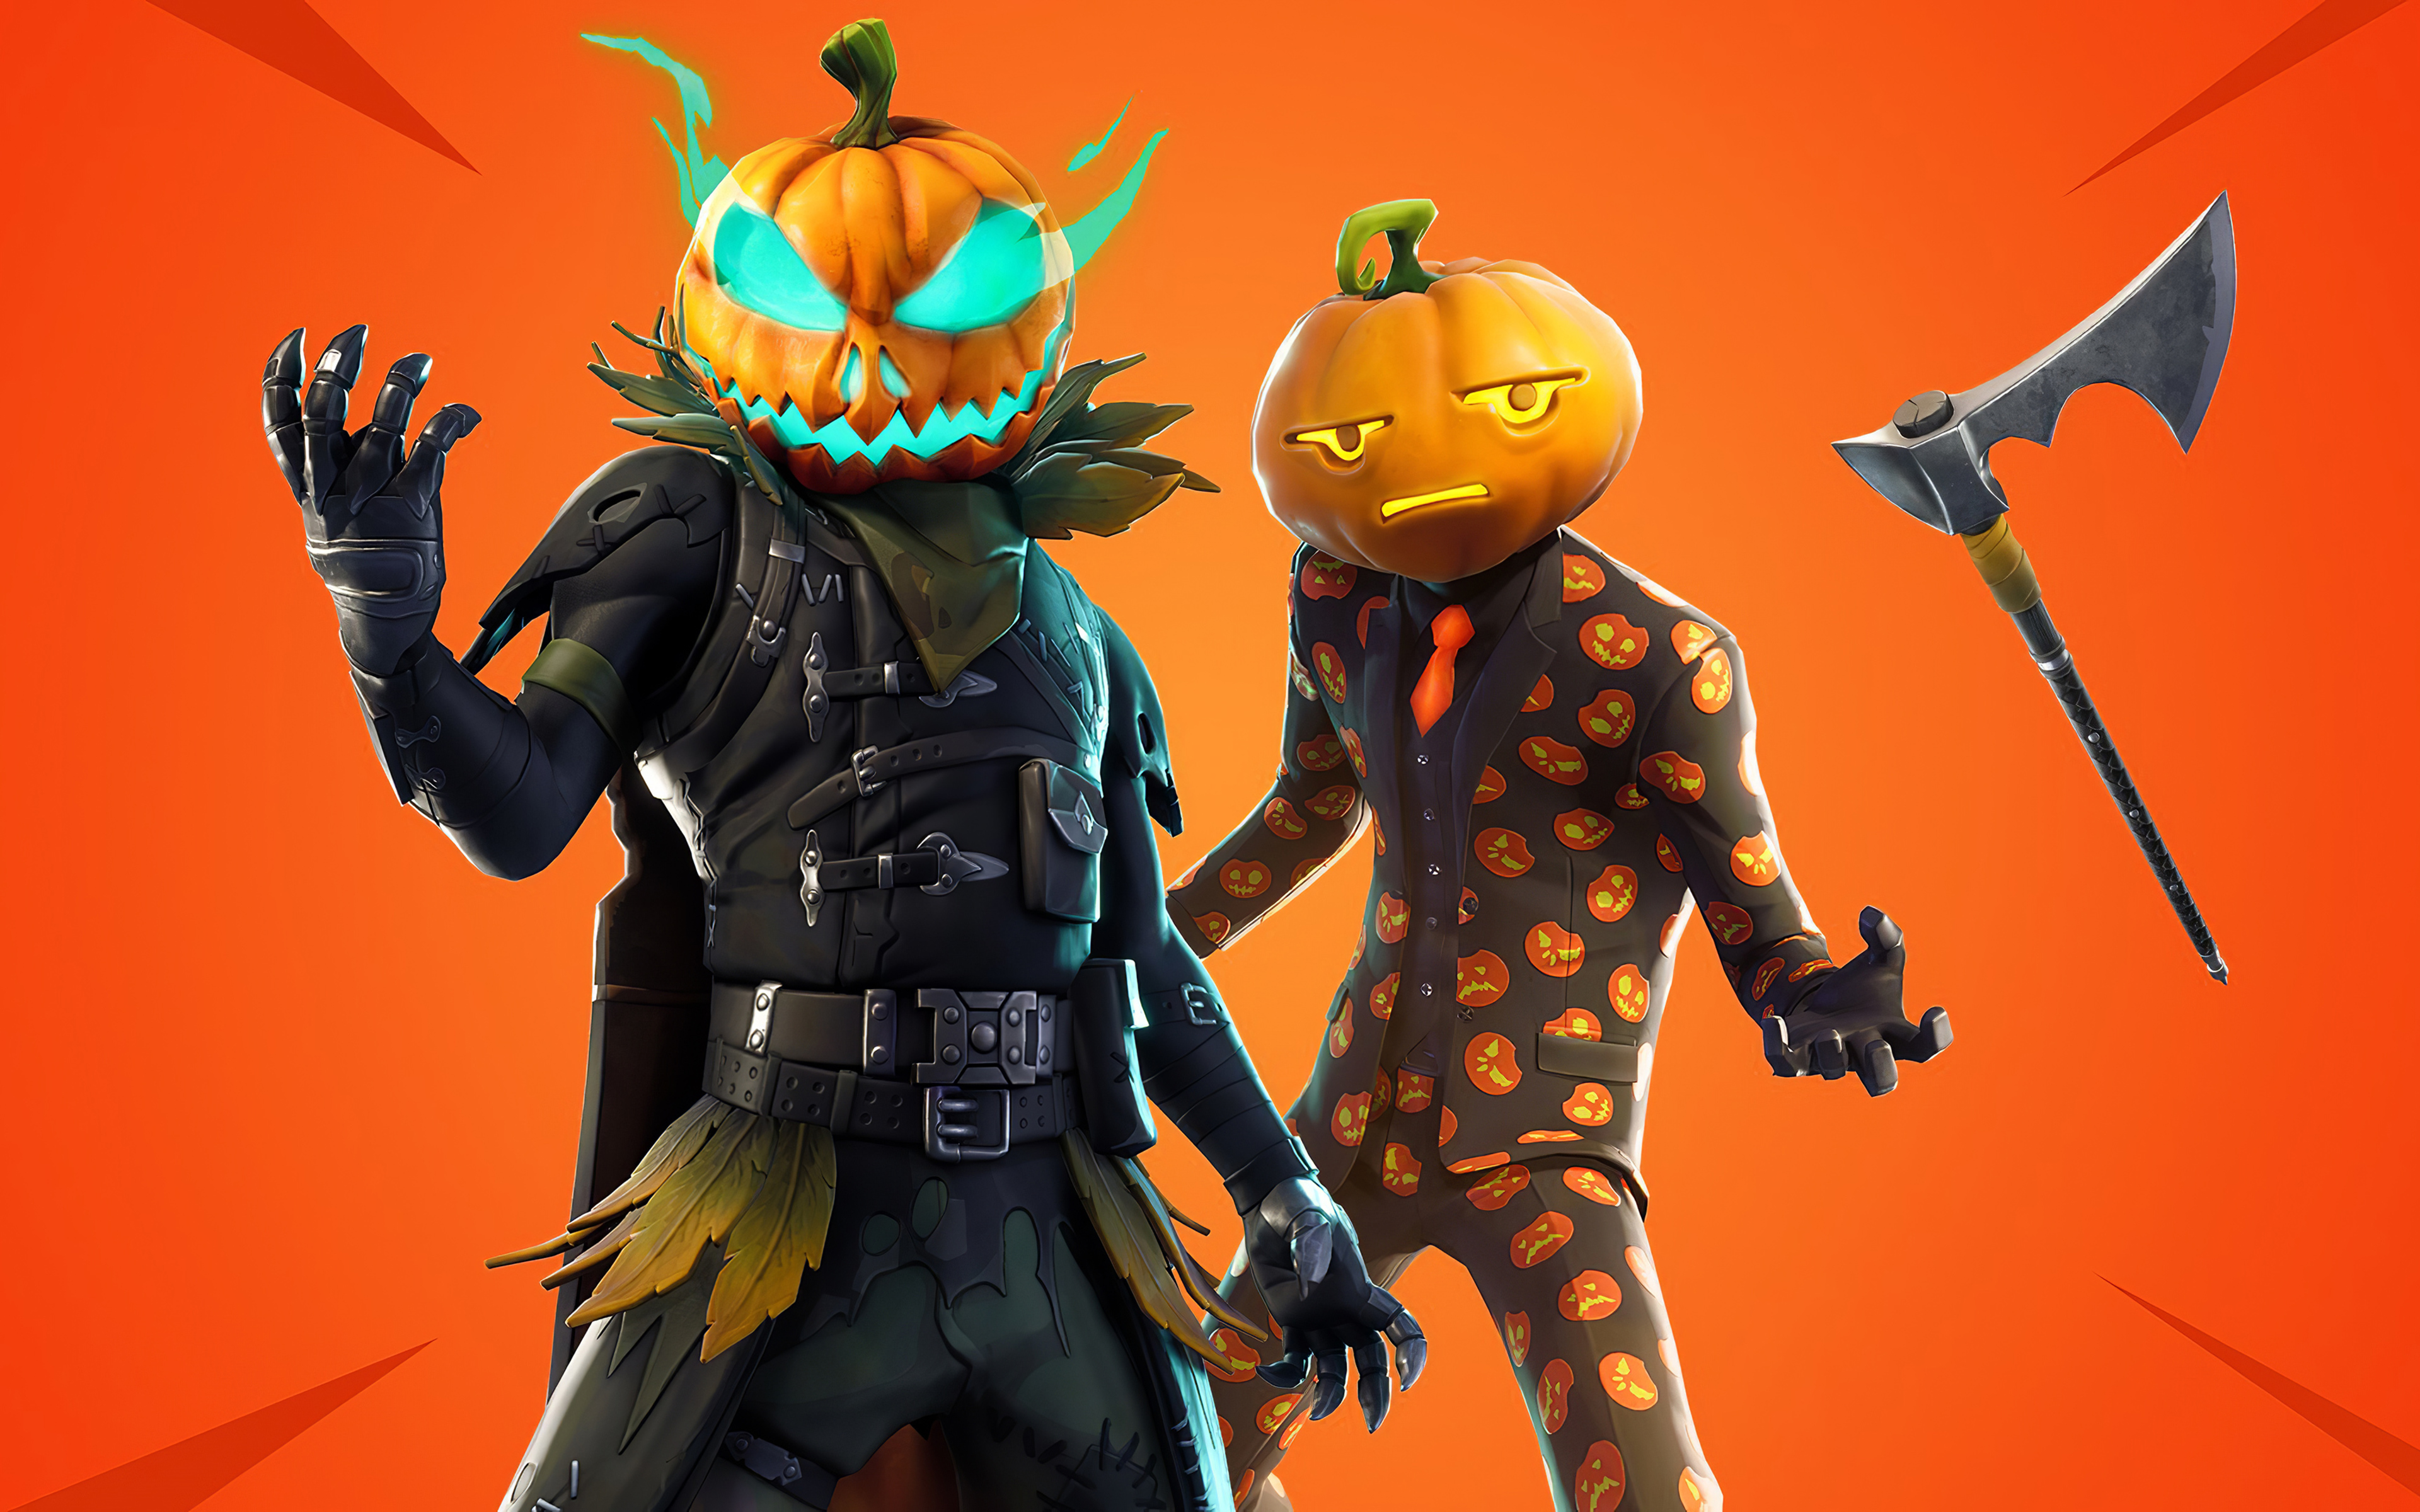 Wallpaper Halloweenhead and Jack Gourdon Fortnite